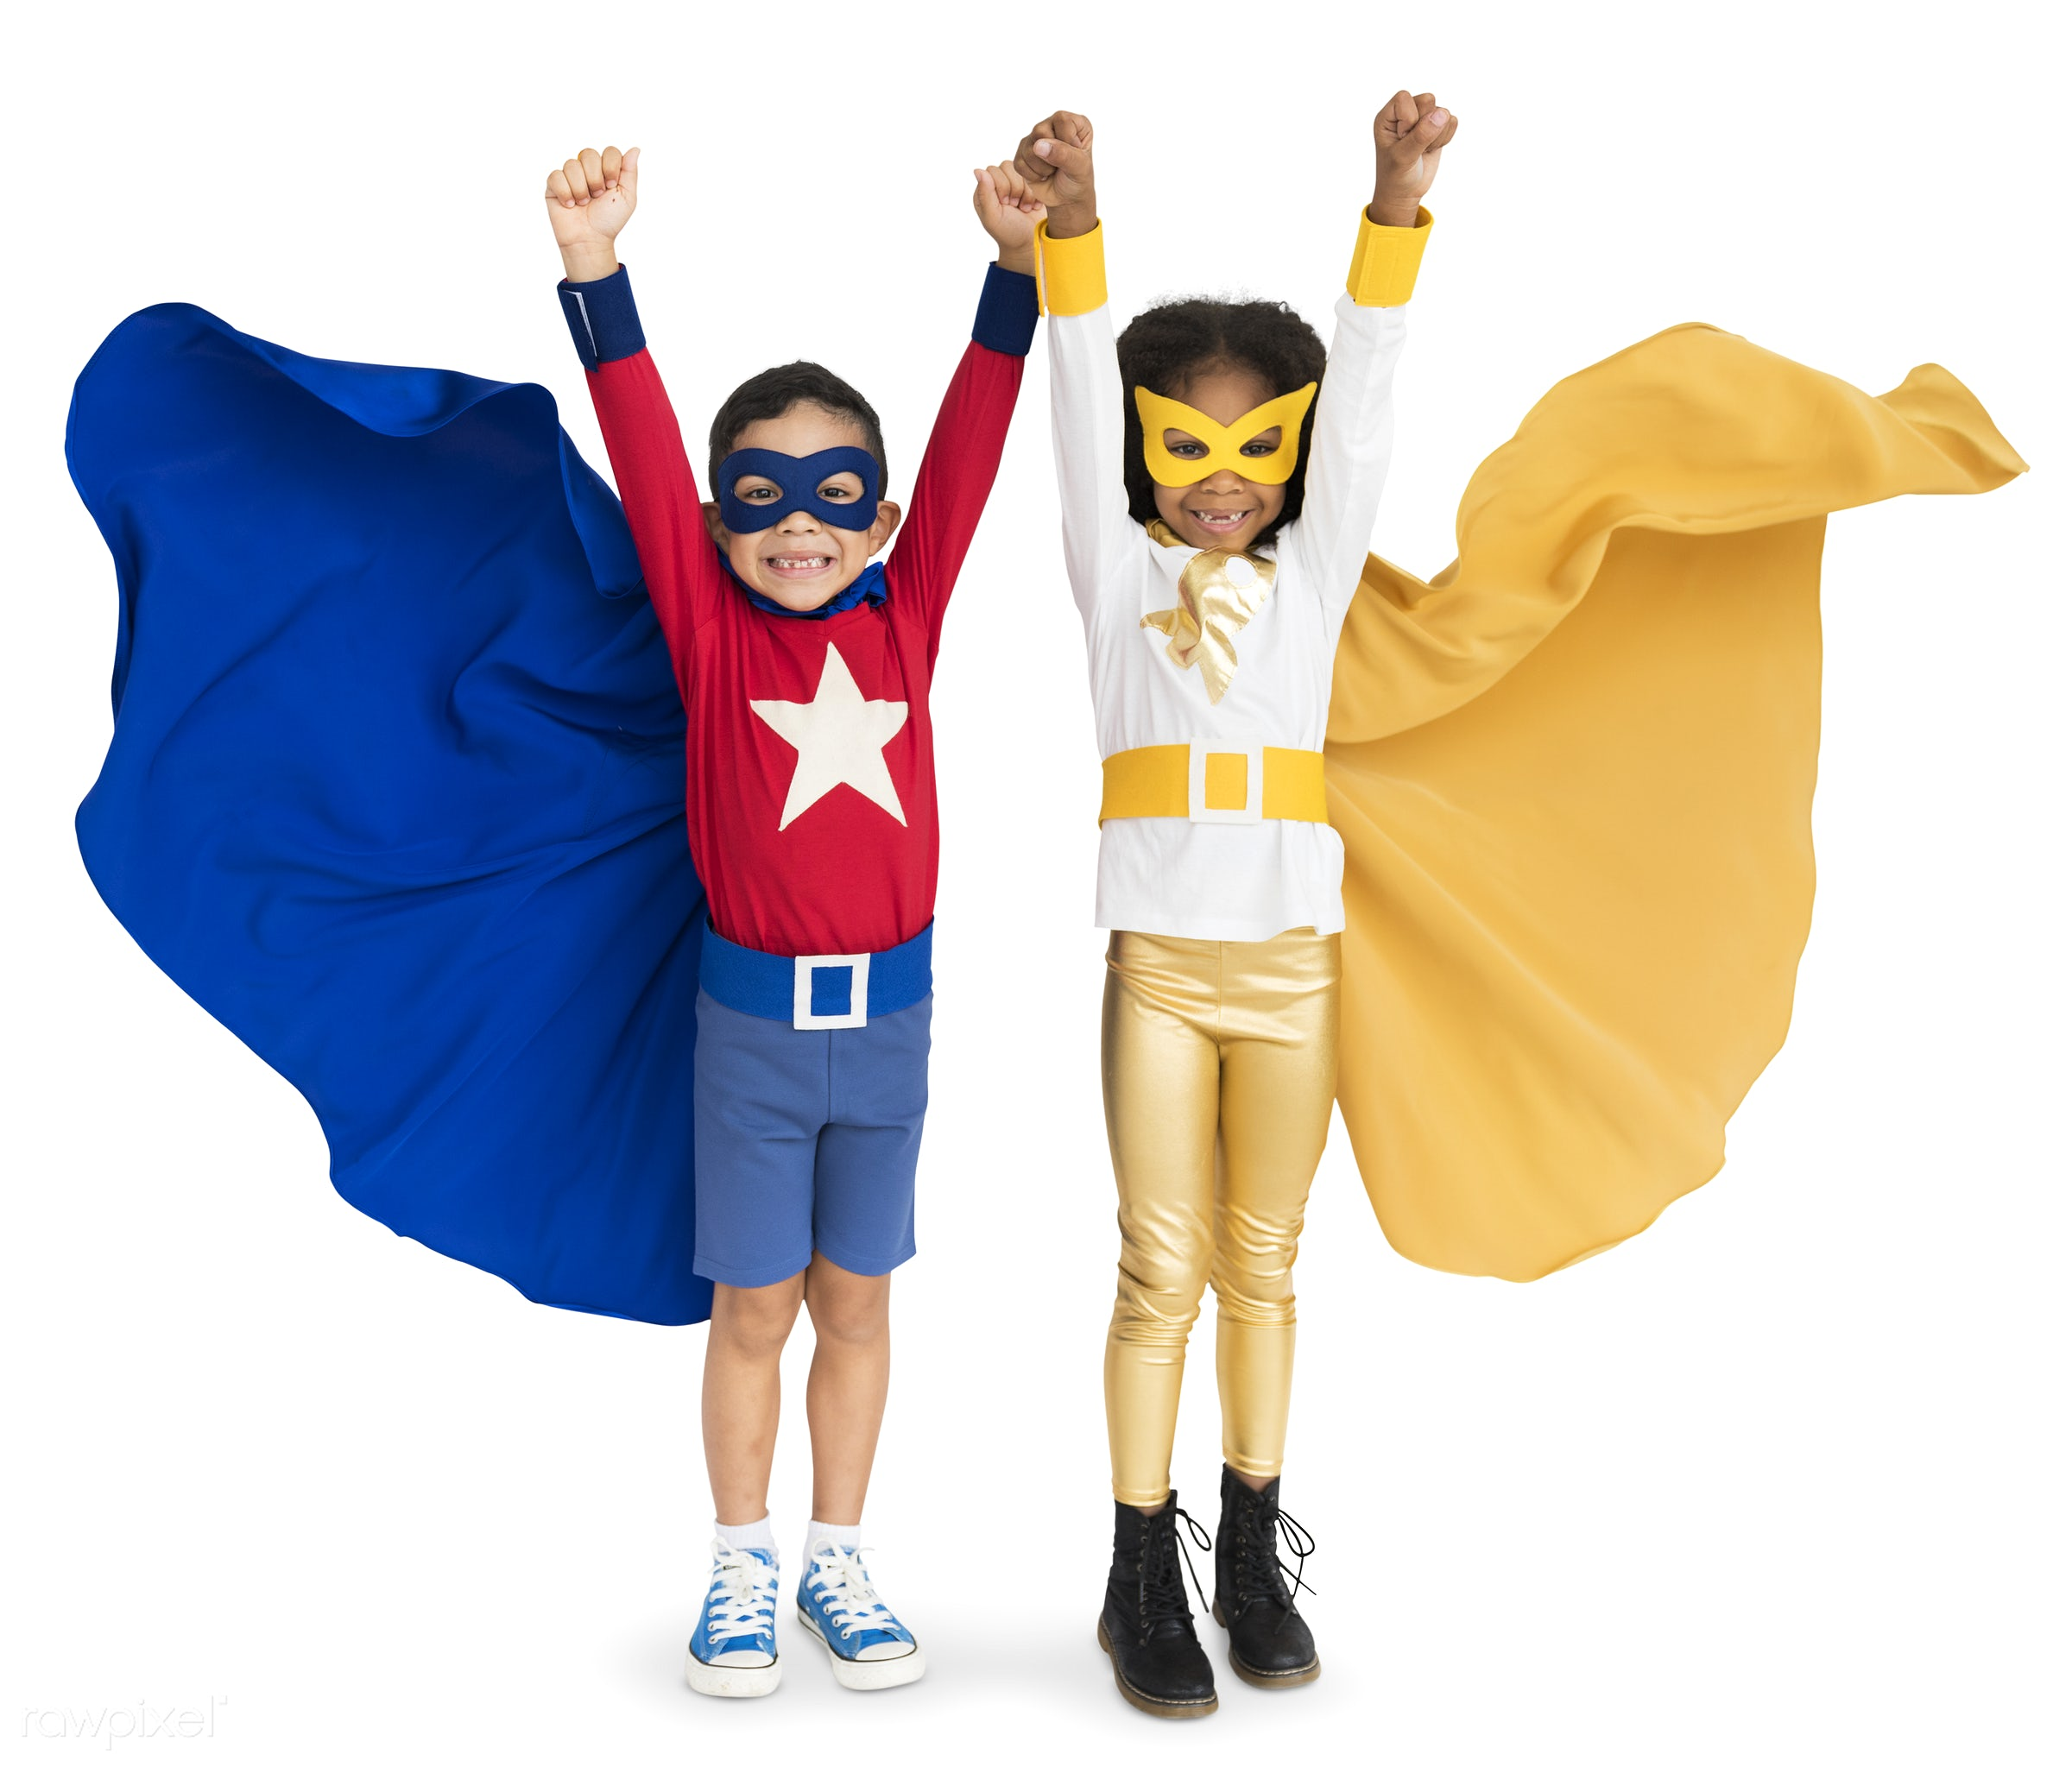 expression, cape, isolated on white, children, cute, child, flying, friends, cheerful, diversity, background, adorable, boy